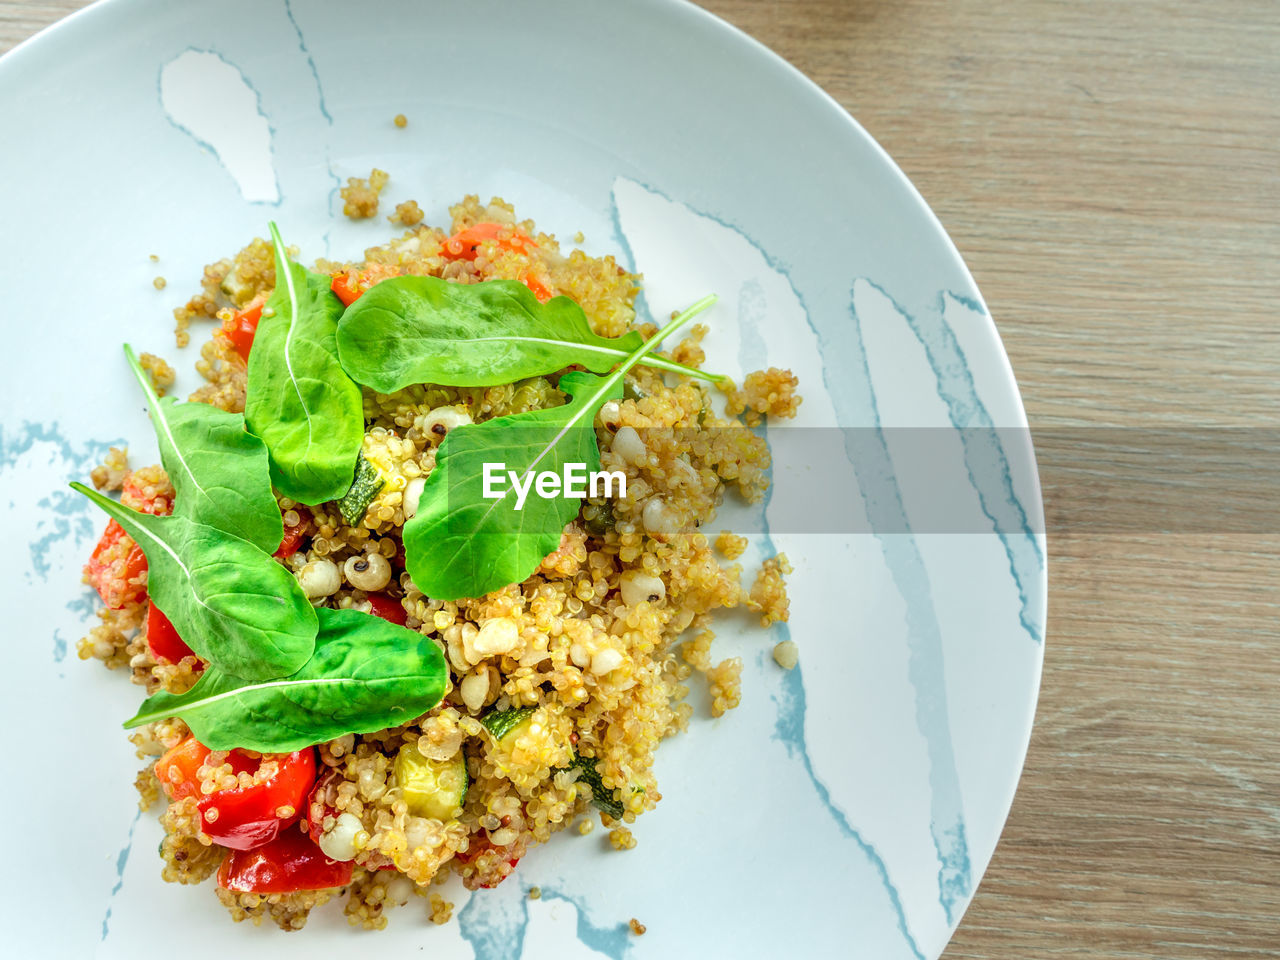 food and drink, food, ready-to-eat, freshness, plate, healthy eating, vegetable, table, wellbeing, still life, serving size, high angle view, indoors, no people, herb, close-up, leaf, basil, meal, directly above, garnish, vegetarian food, breakfast, temptation